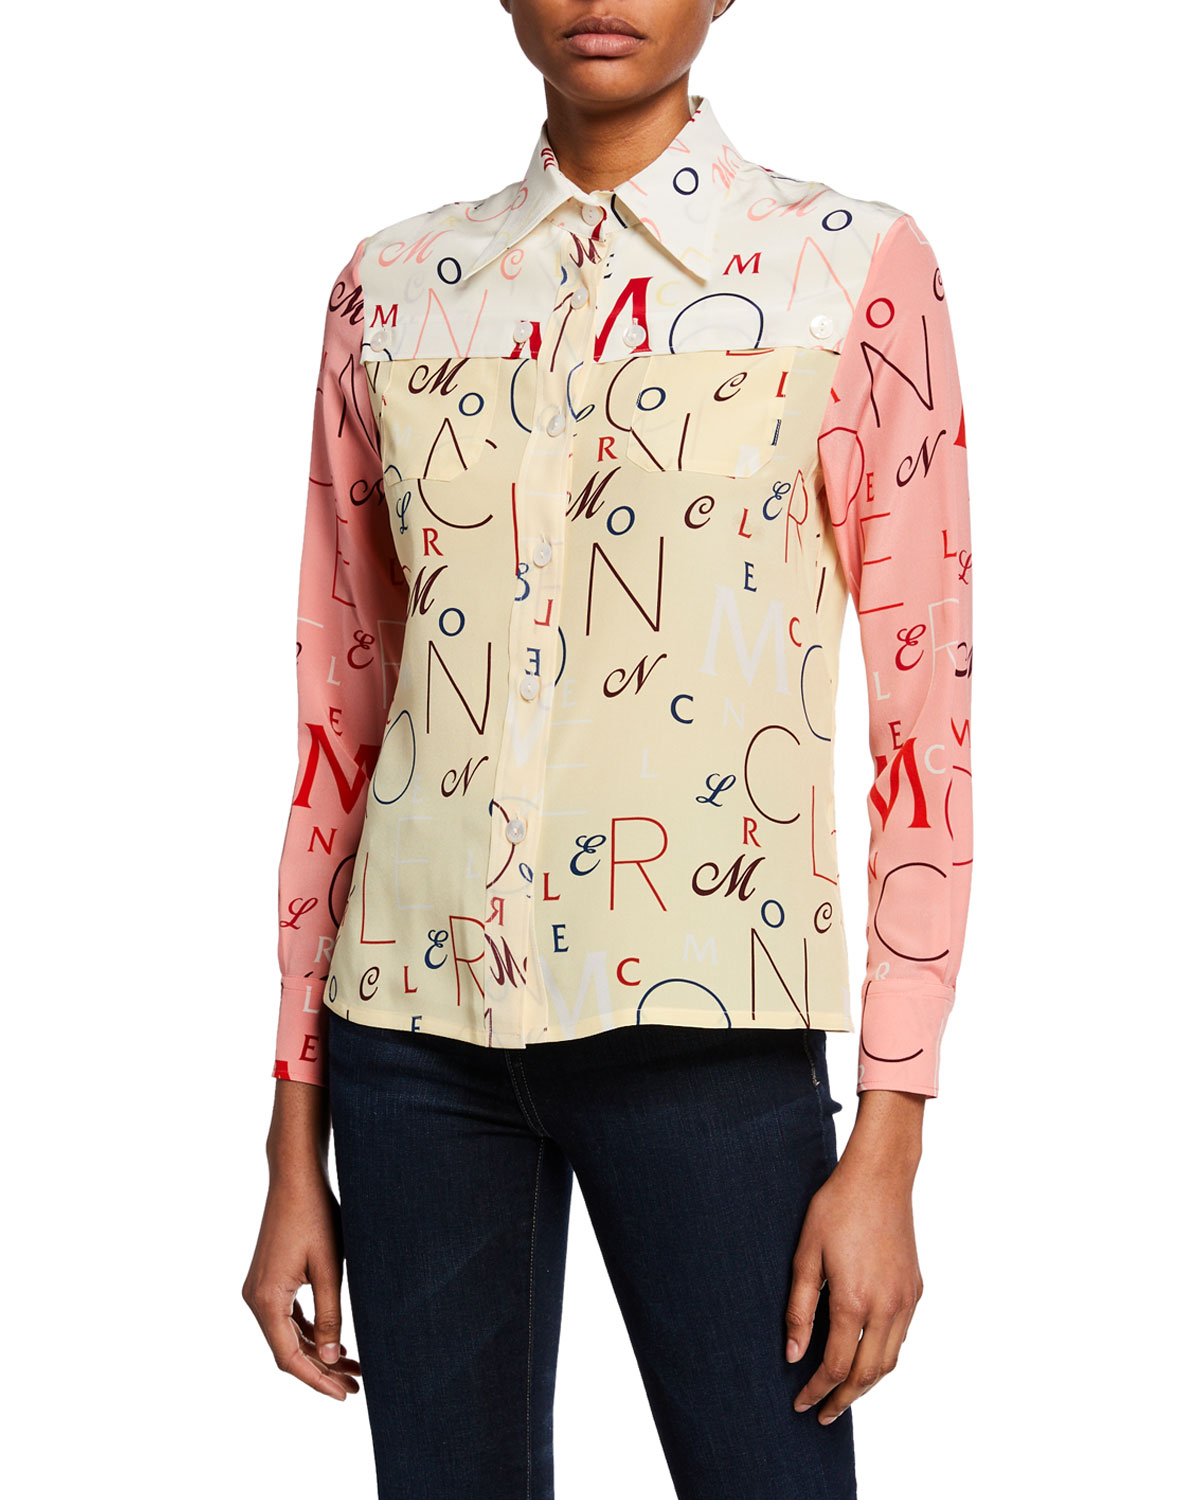 Moncler Moncler Genius Long-Sleeve Printed Silk Shirt